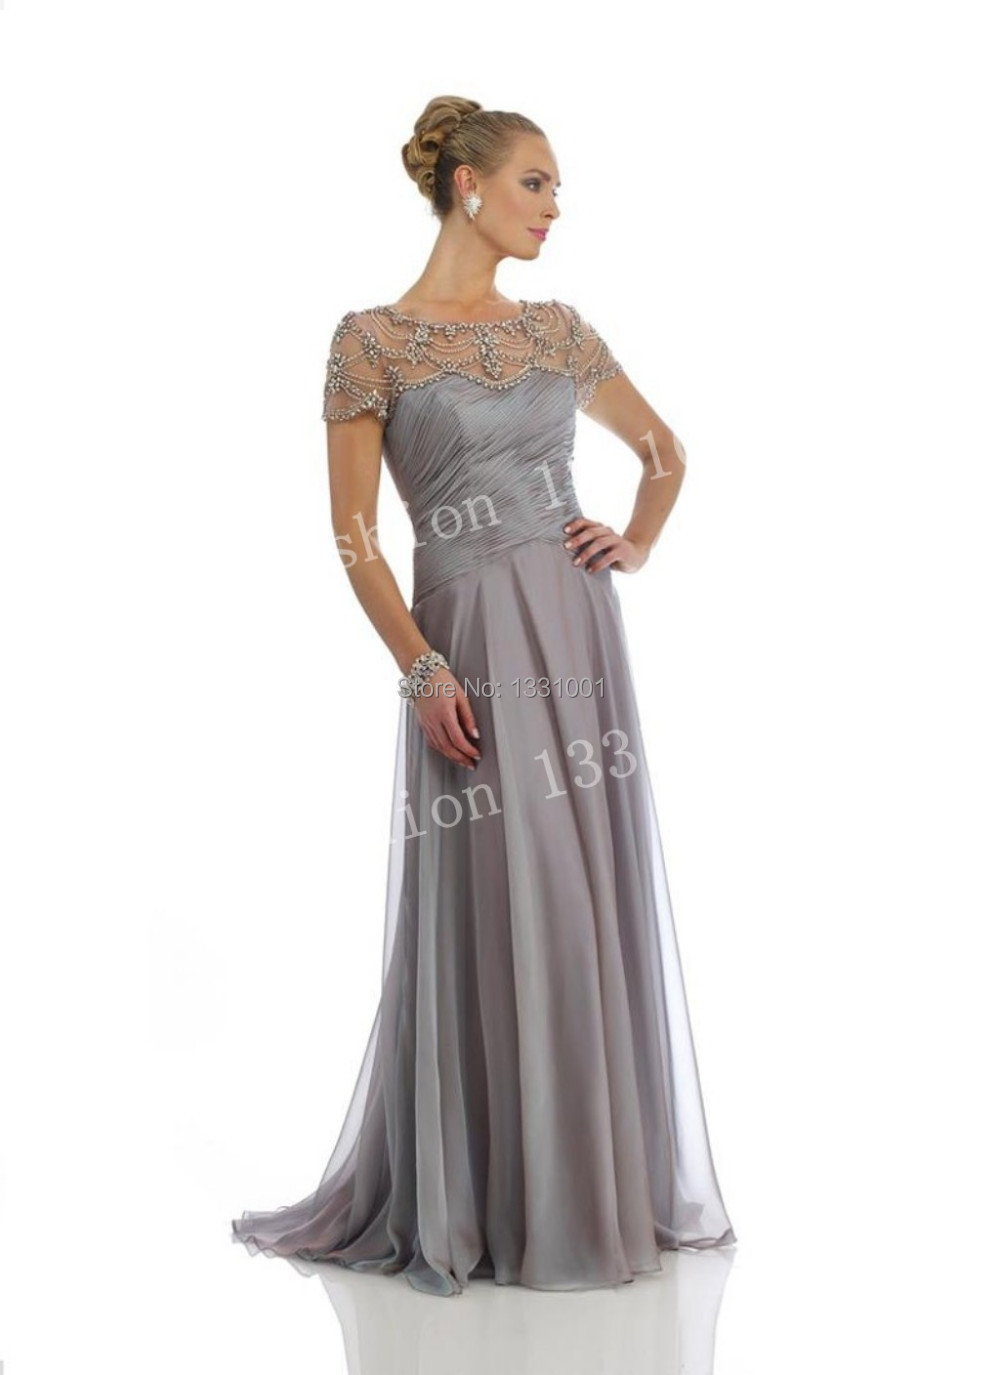 New Designer Evening Dresses And Gowns 2015 Evening Dress In ...